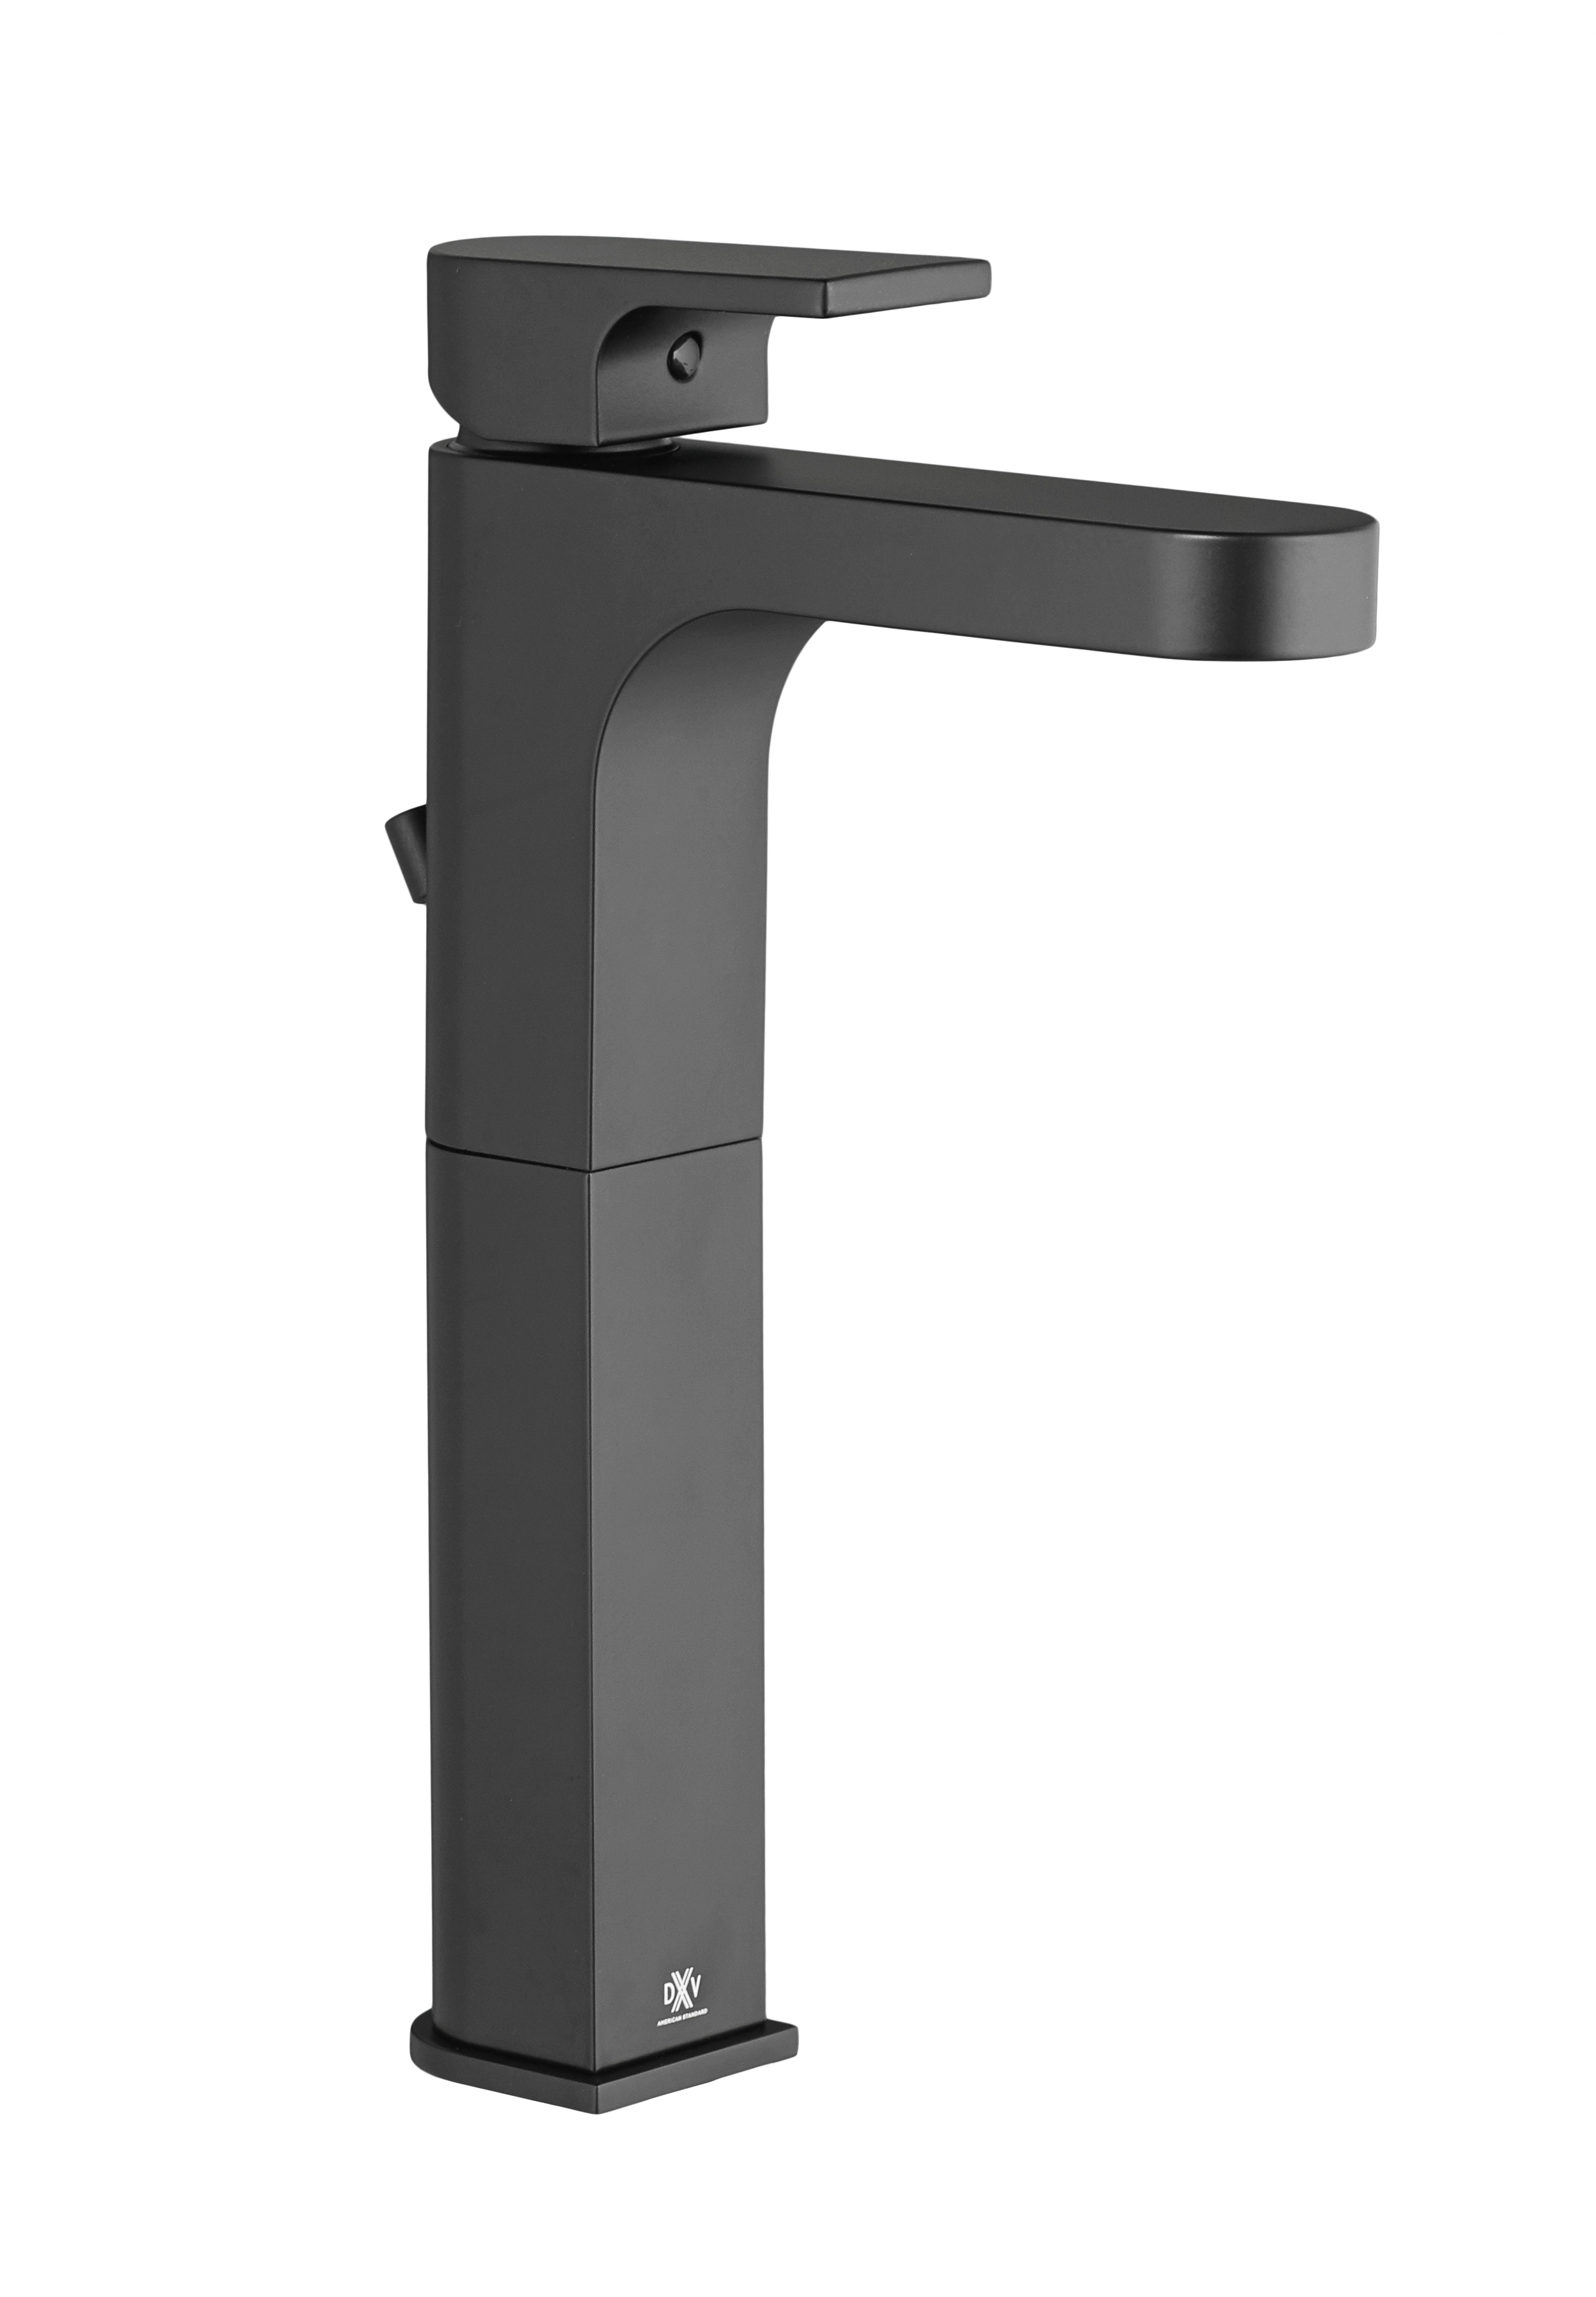 Equility Vessel Faucet